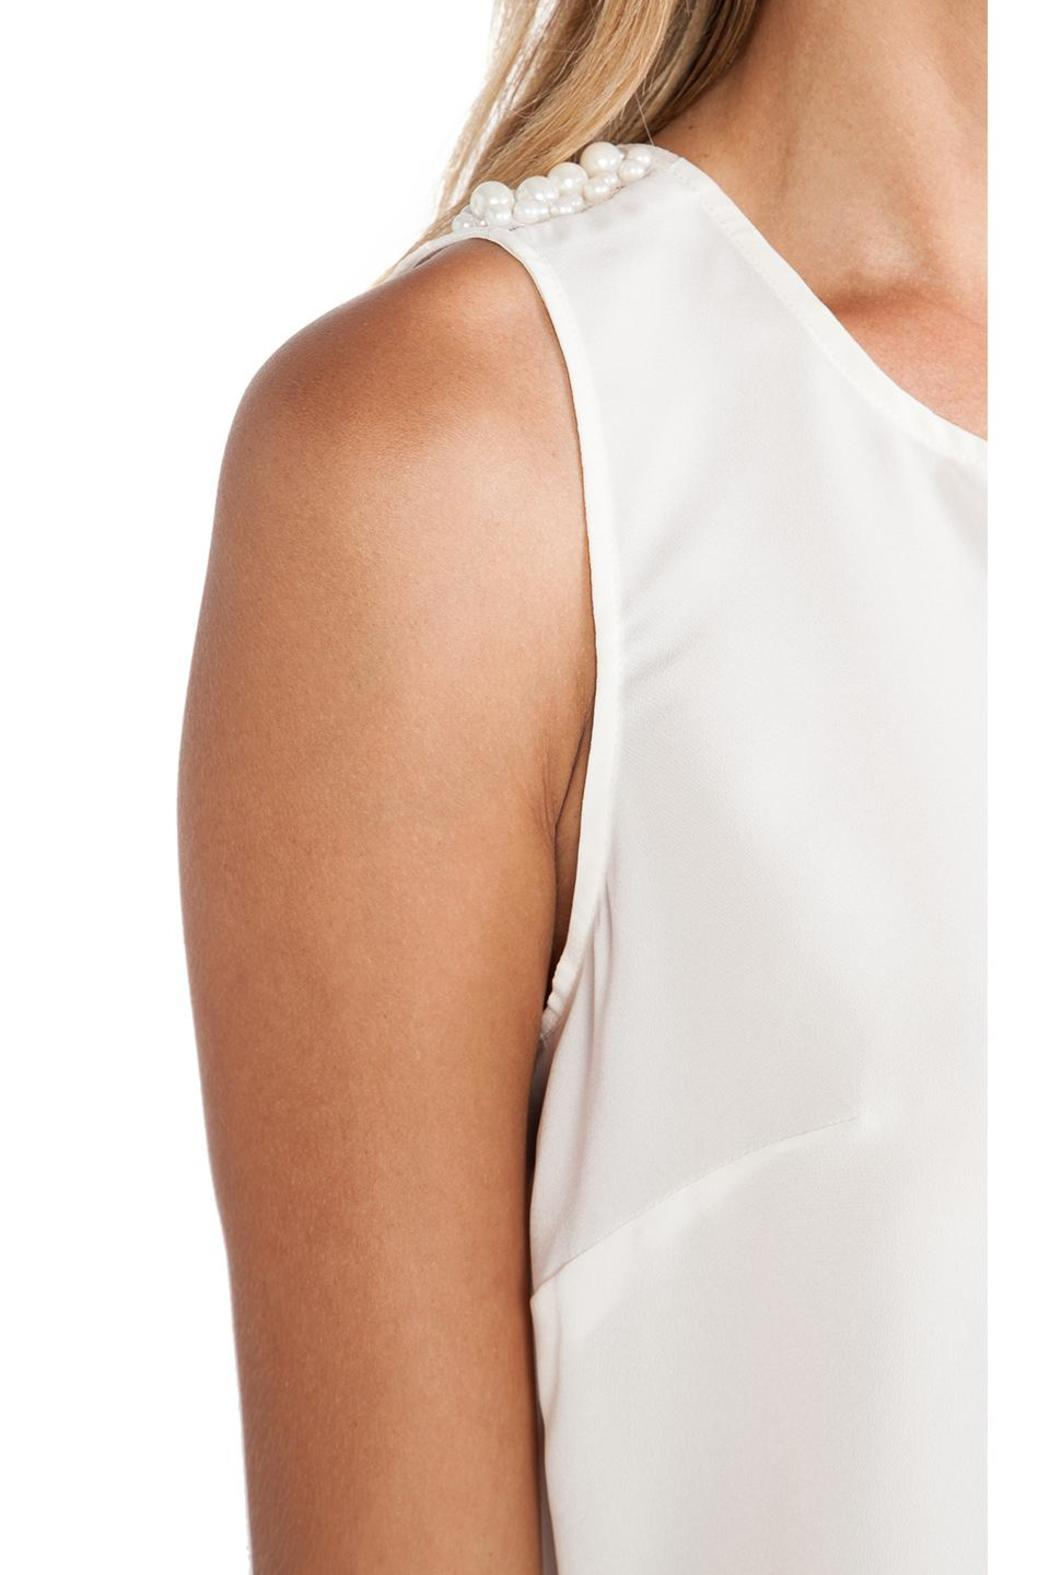 BCBGeneration Pearl Open-Back Top - Side Cropped Image